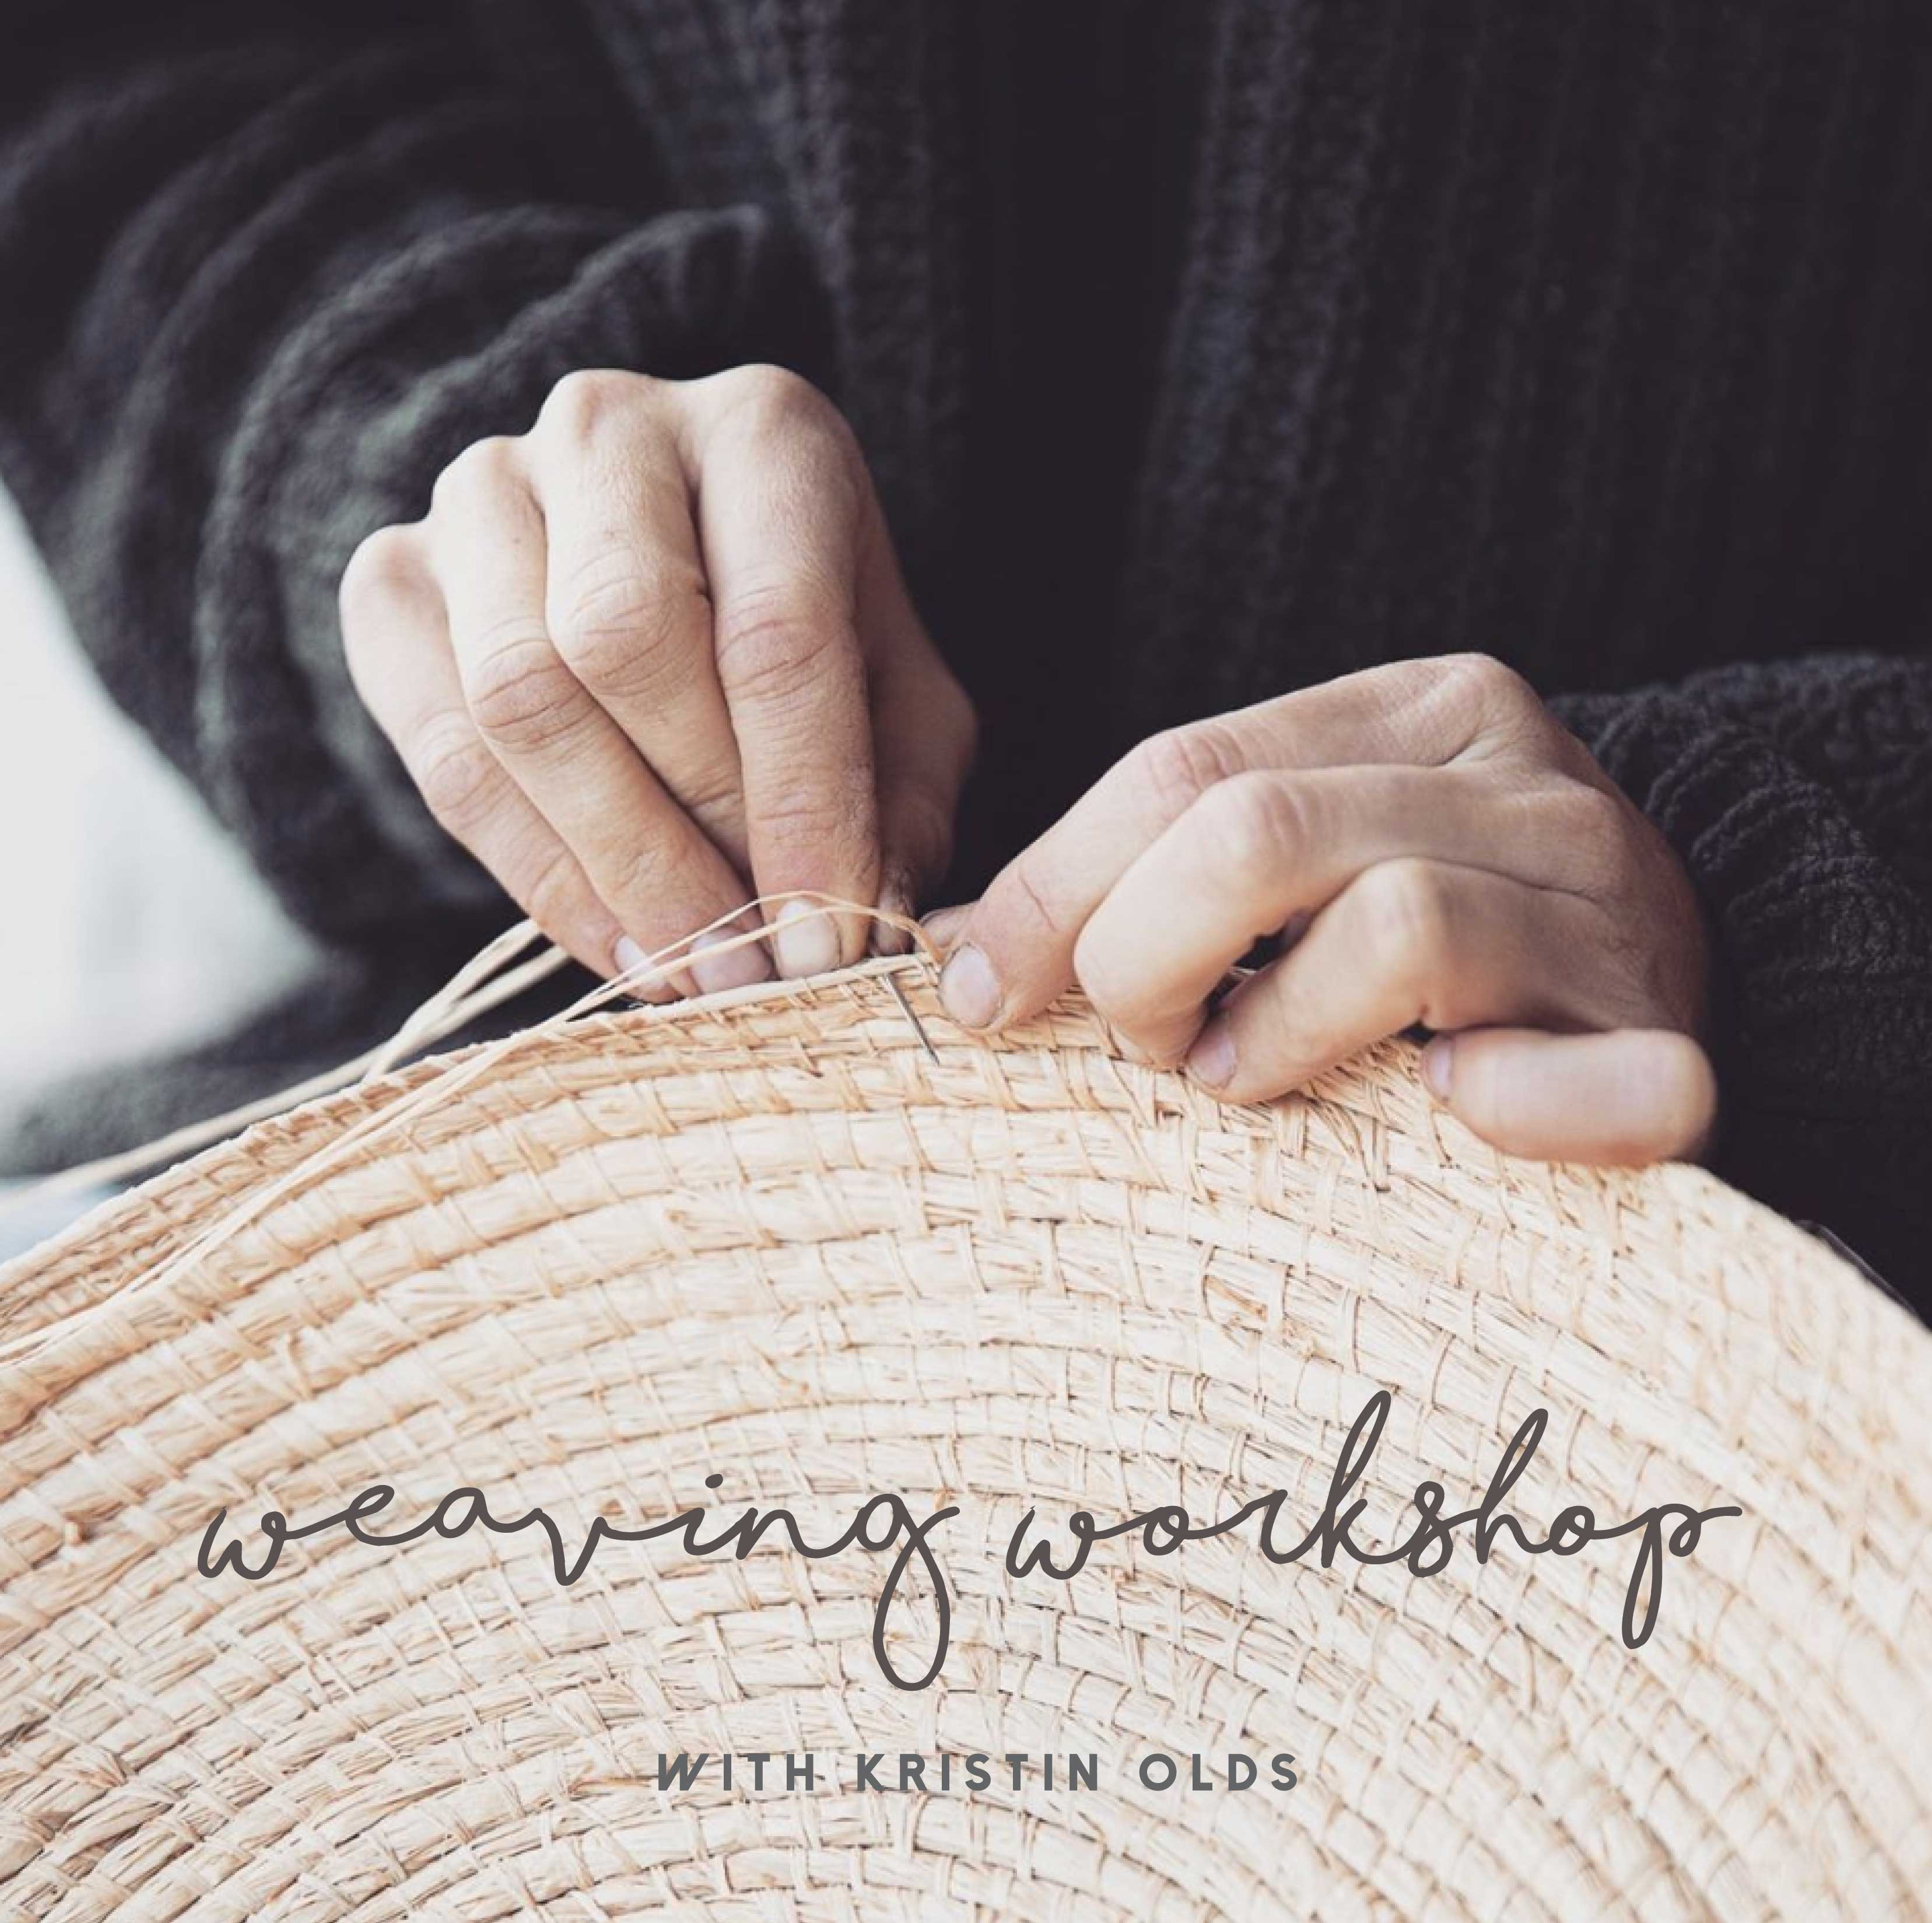 Weaving Workshop with Kristin Olds